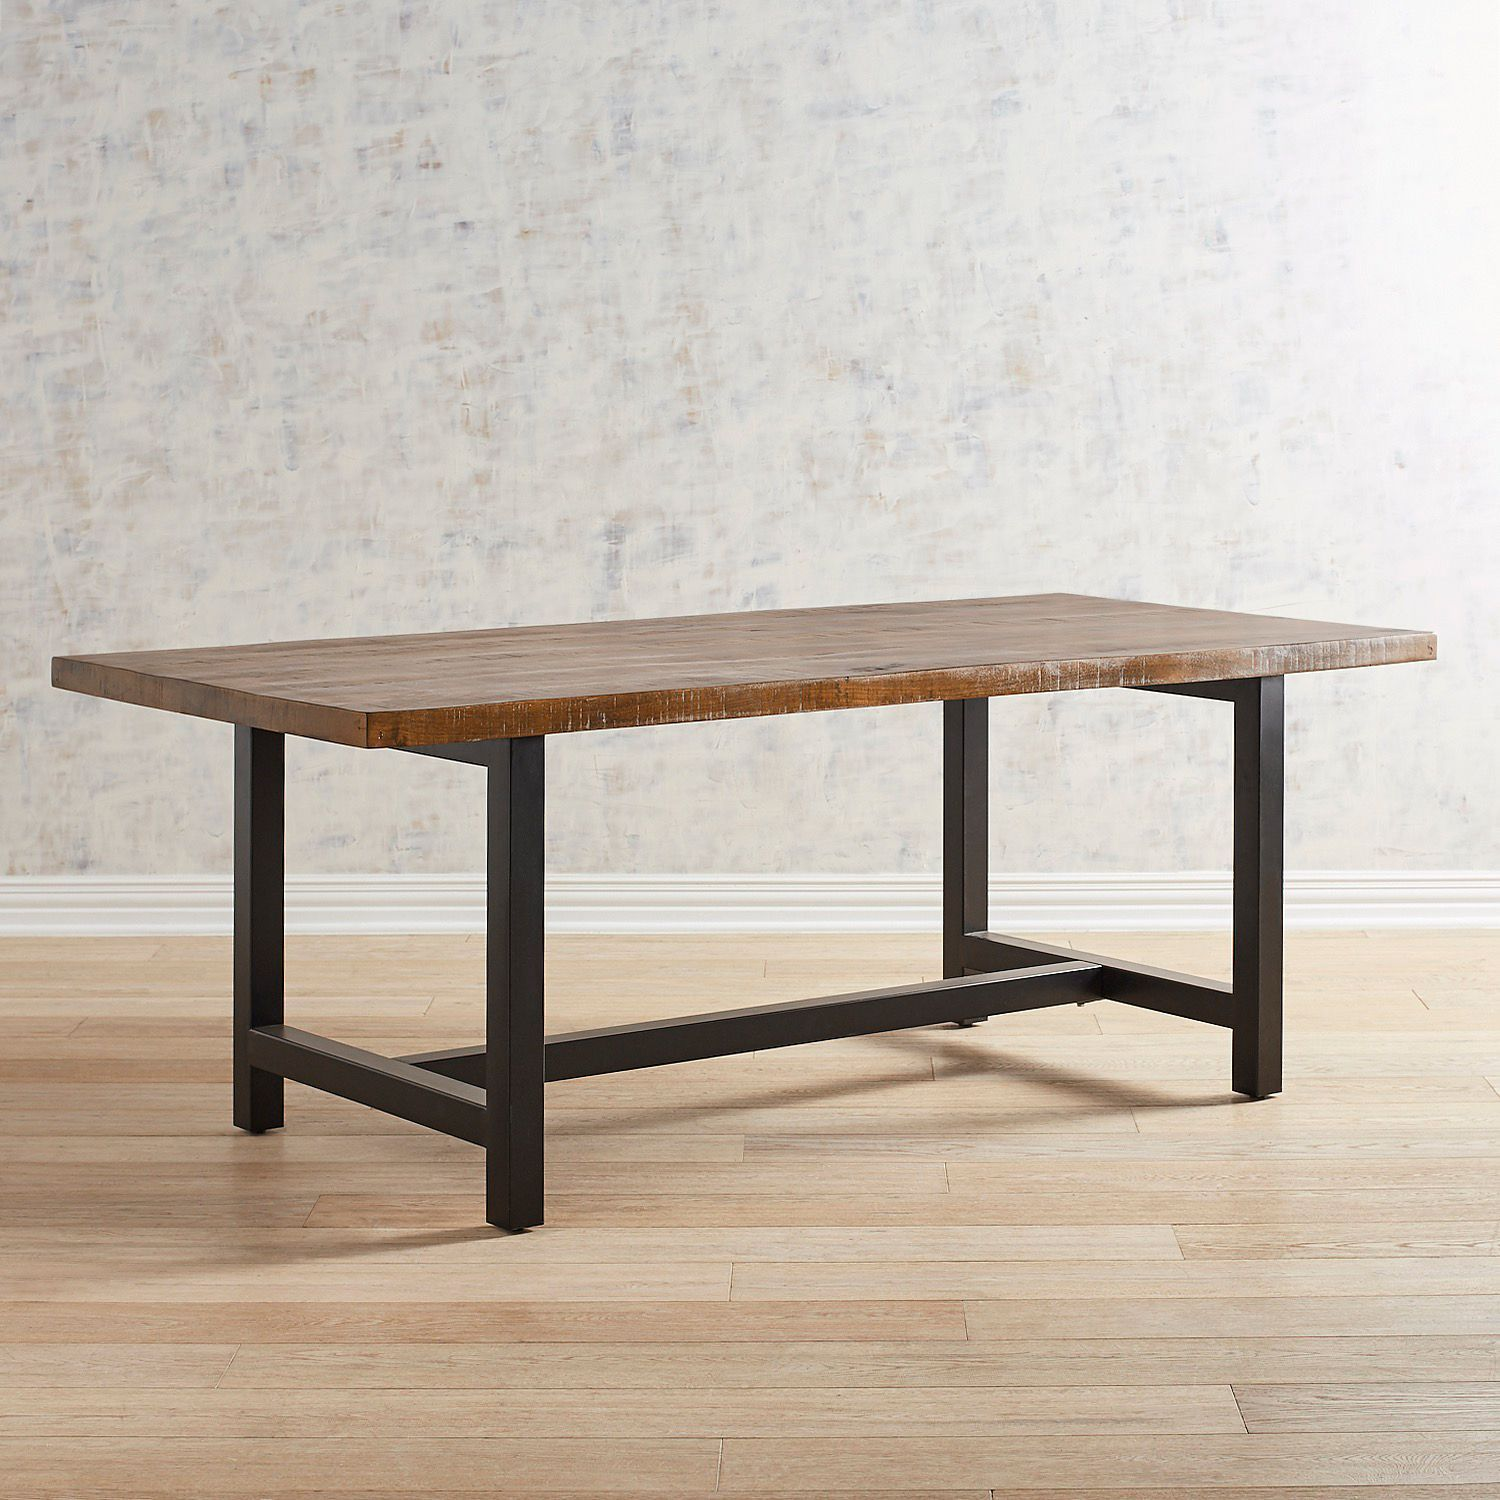 Harlan Brown Dining Table Metal Base Dining Table Dining Room